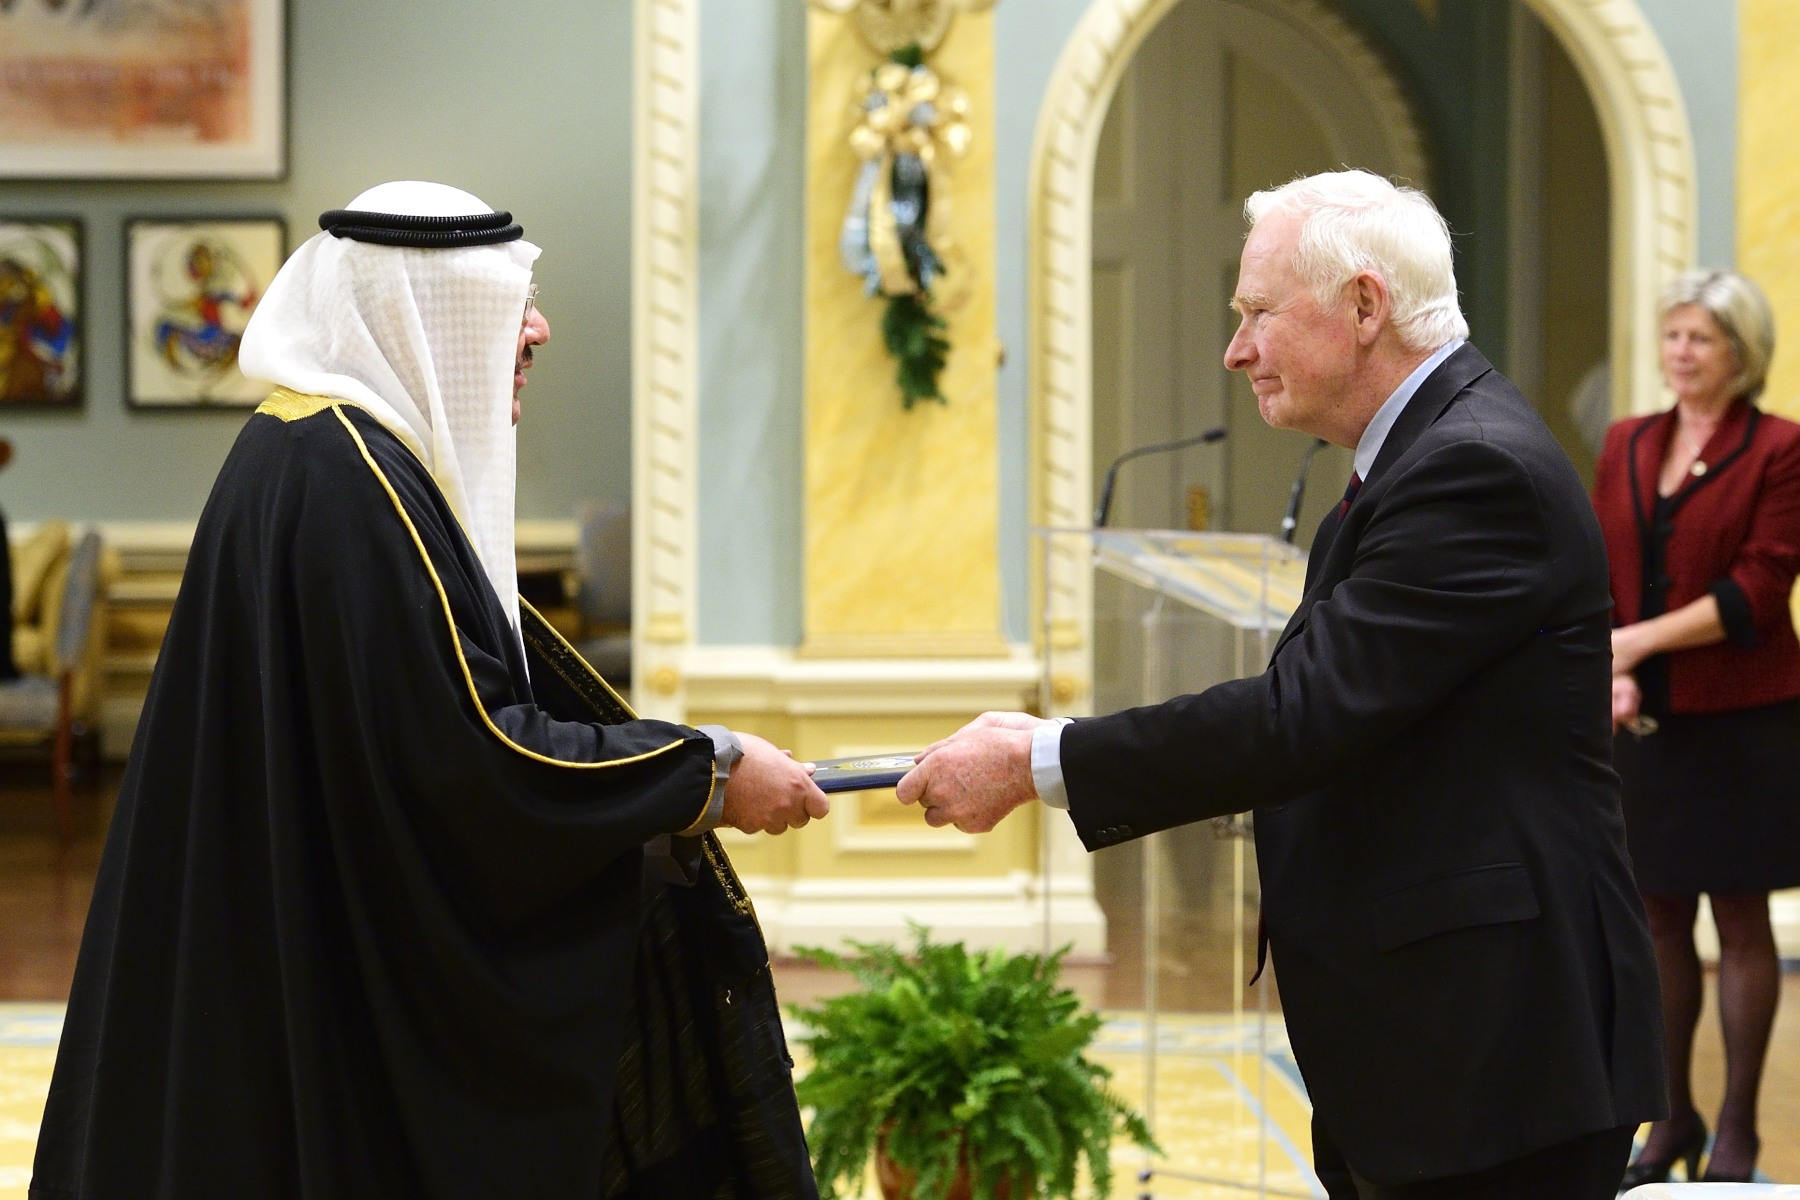 His Excellency Abdulhamid Alfailakawi Ambassador of the State of Kuwait was the last one to present his letters of credence to the Governor General.